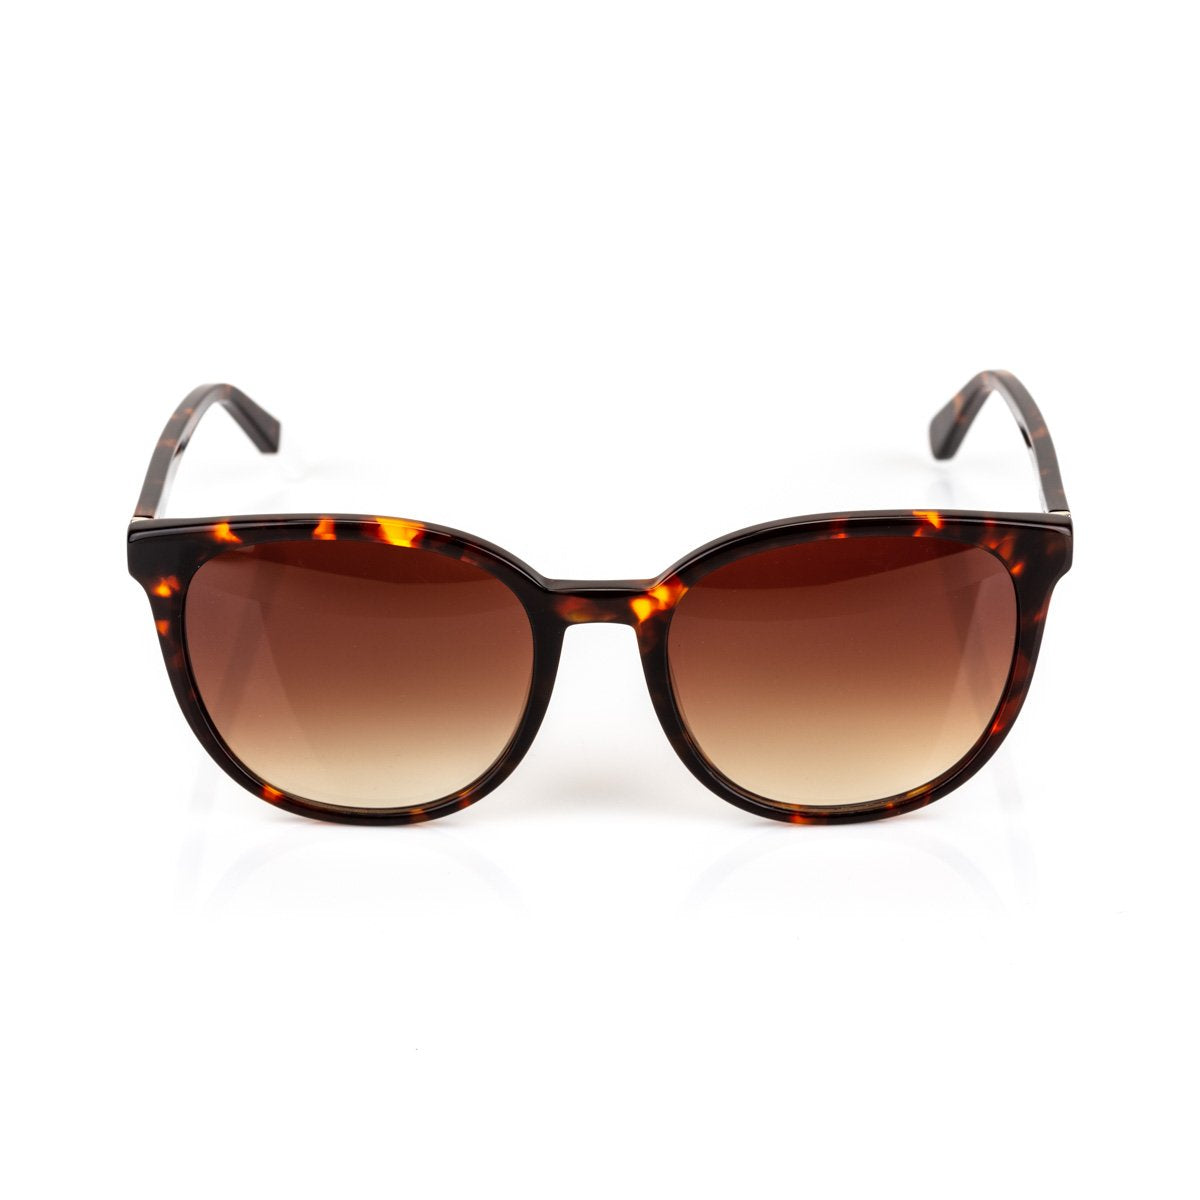 654bc210e Sunglasses | Round Tortoiseshell Cat Eye Sunglasses | Pala – Dollydagger